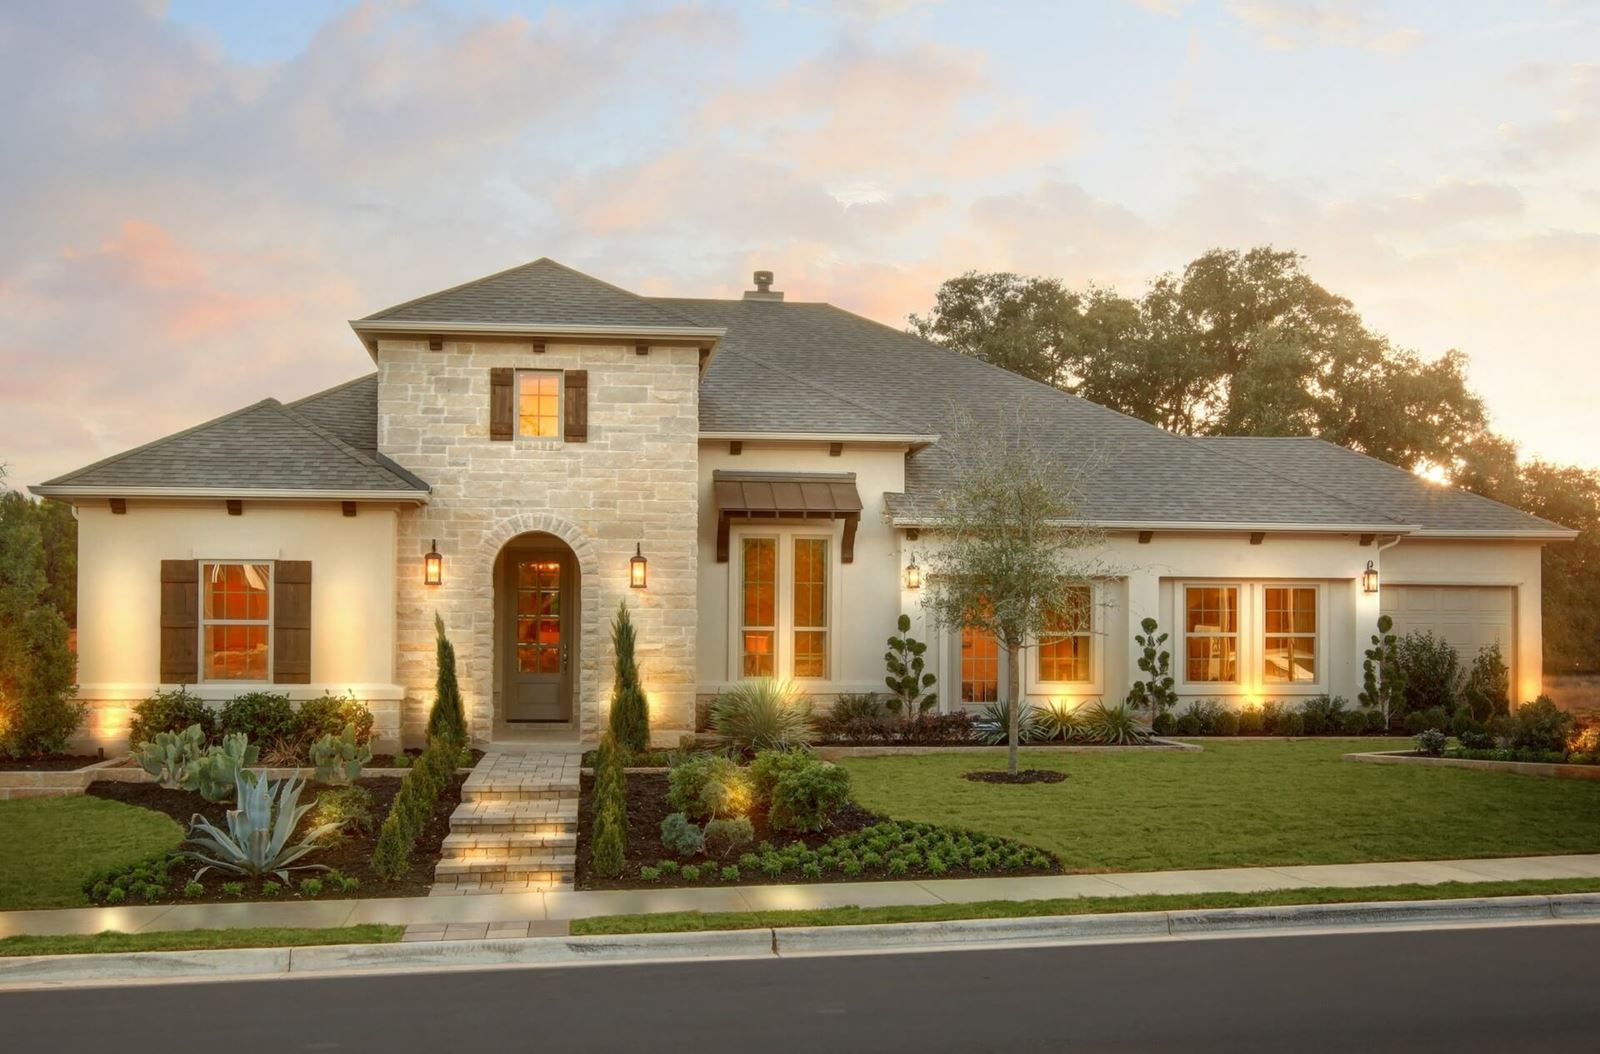 Canyon falls new homes in northlake tx country malvernweather Gallery